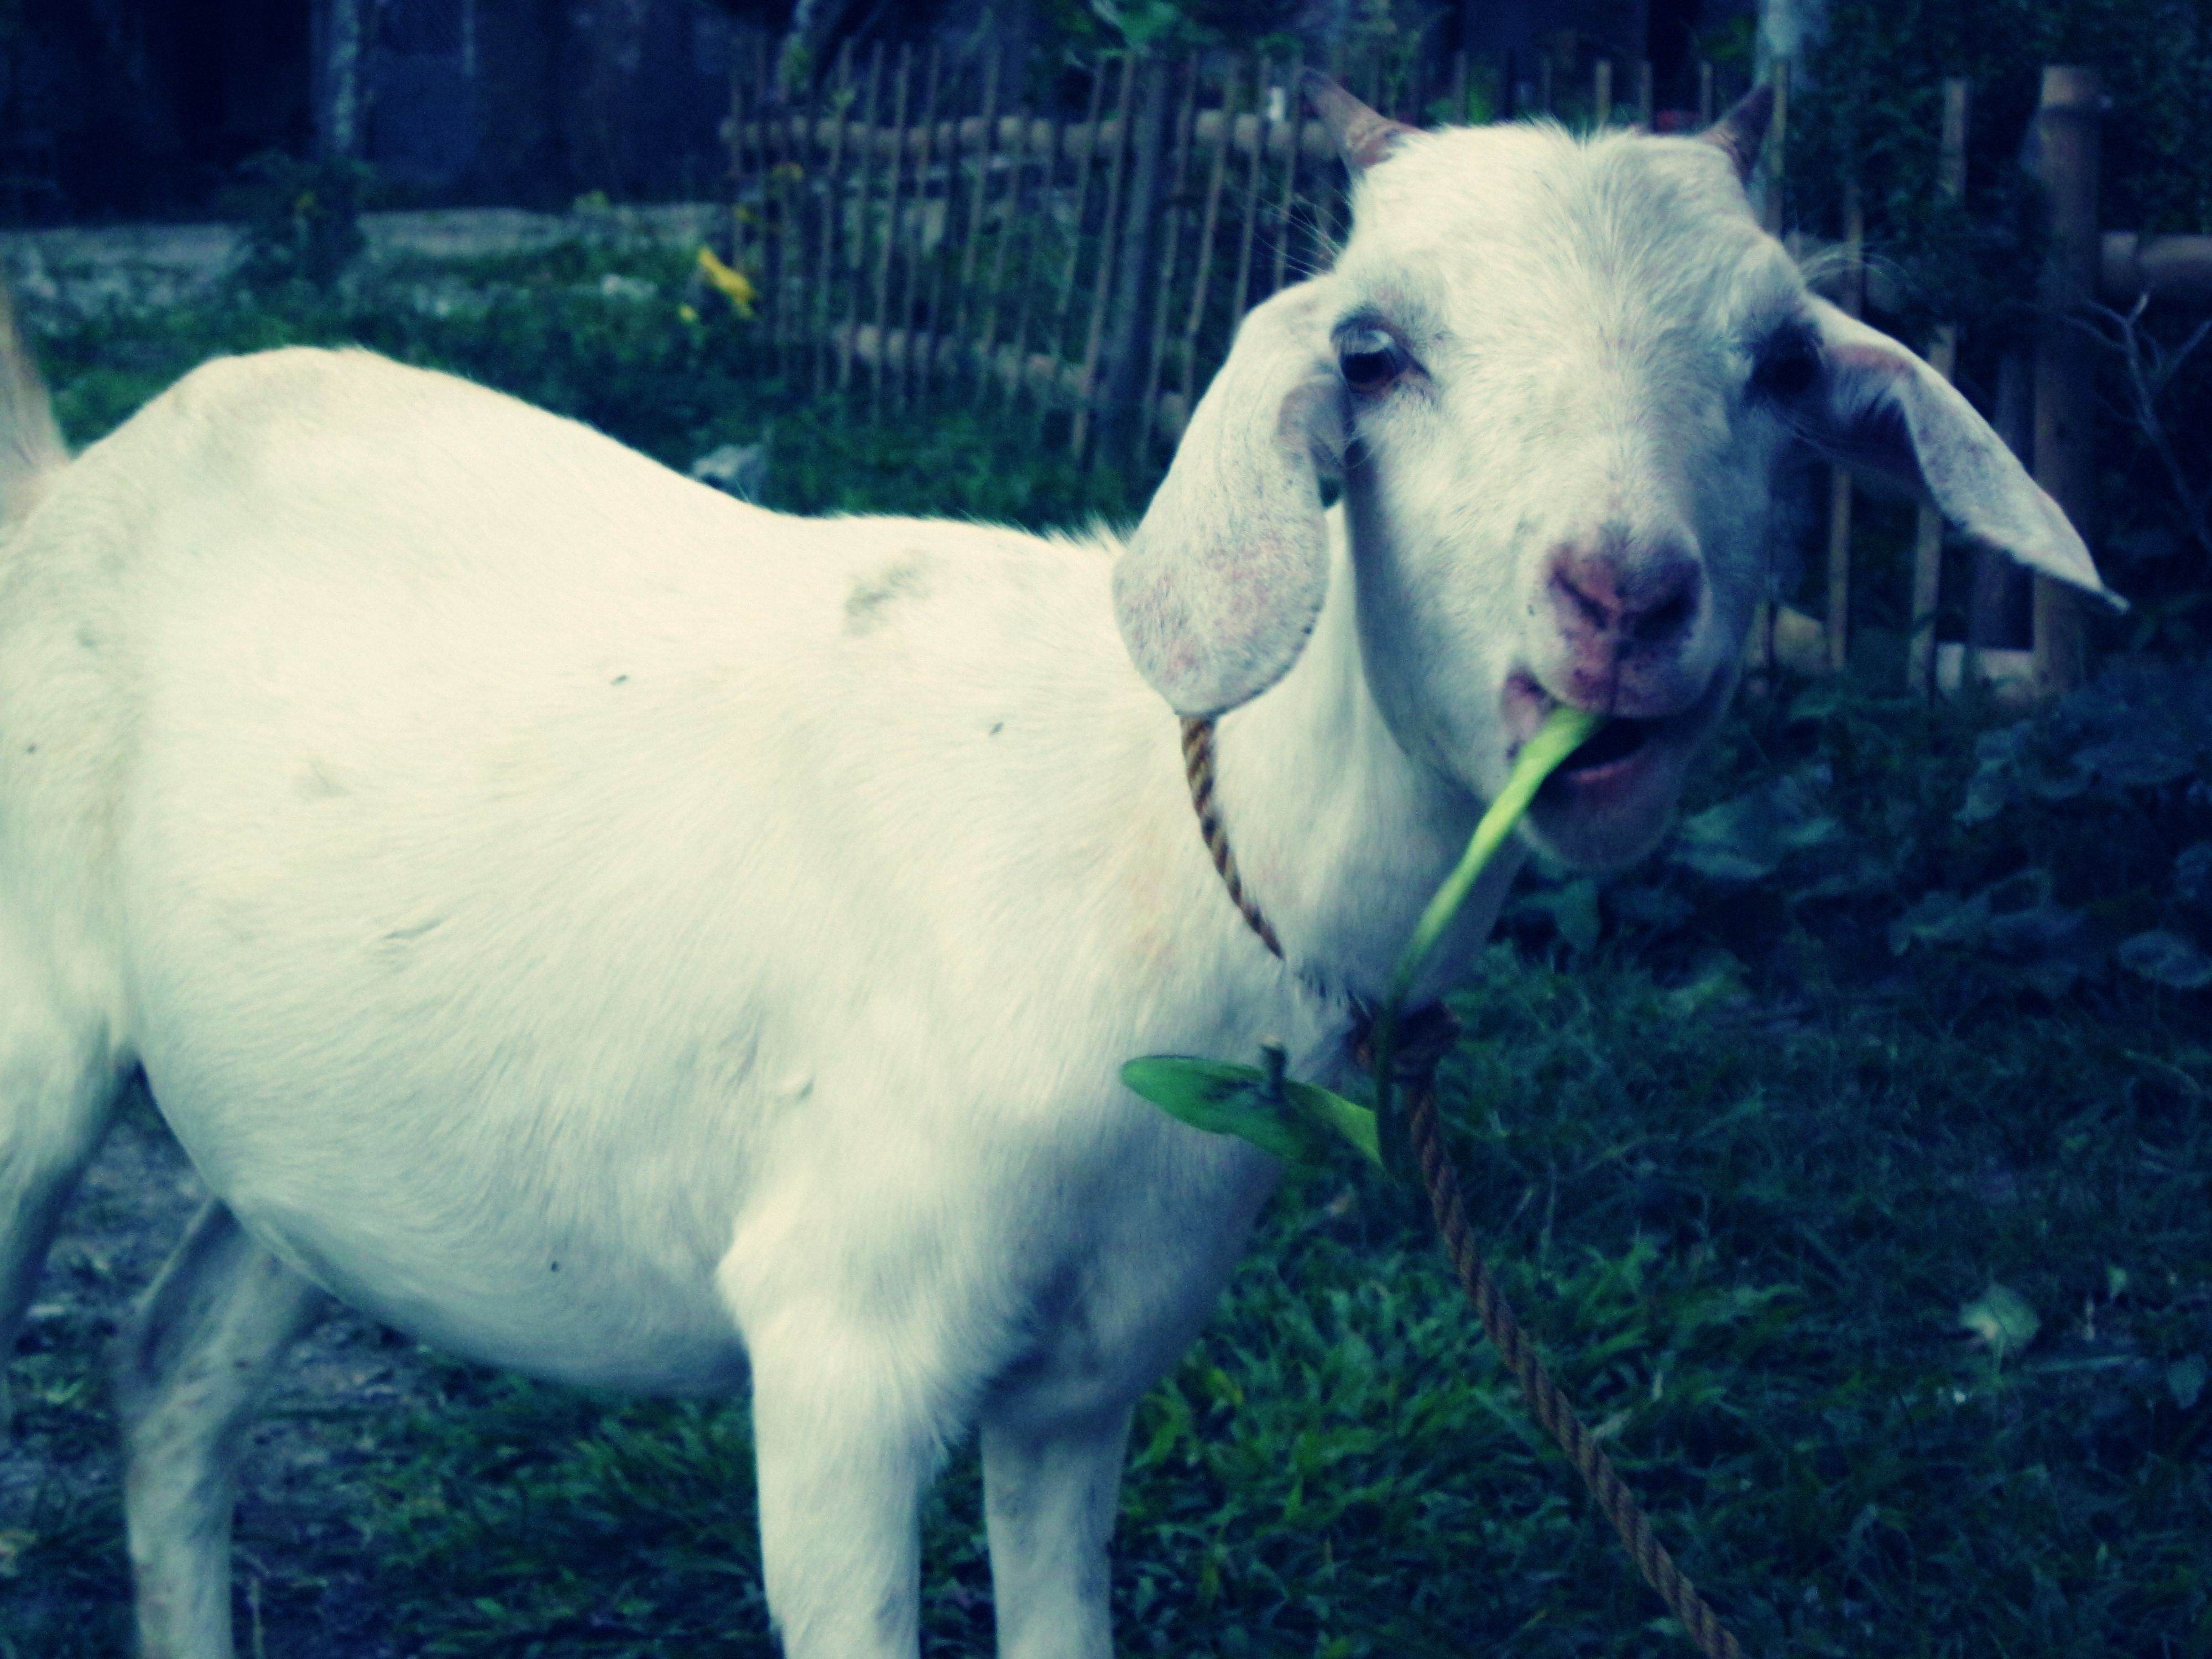 He's everywhere.  So photogenic. The goat wandering around our yard.